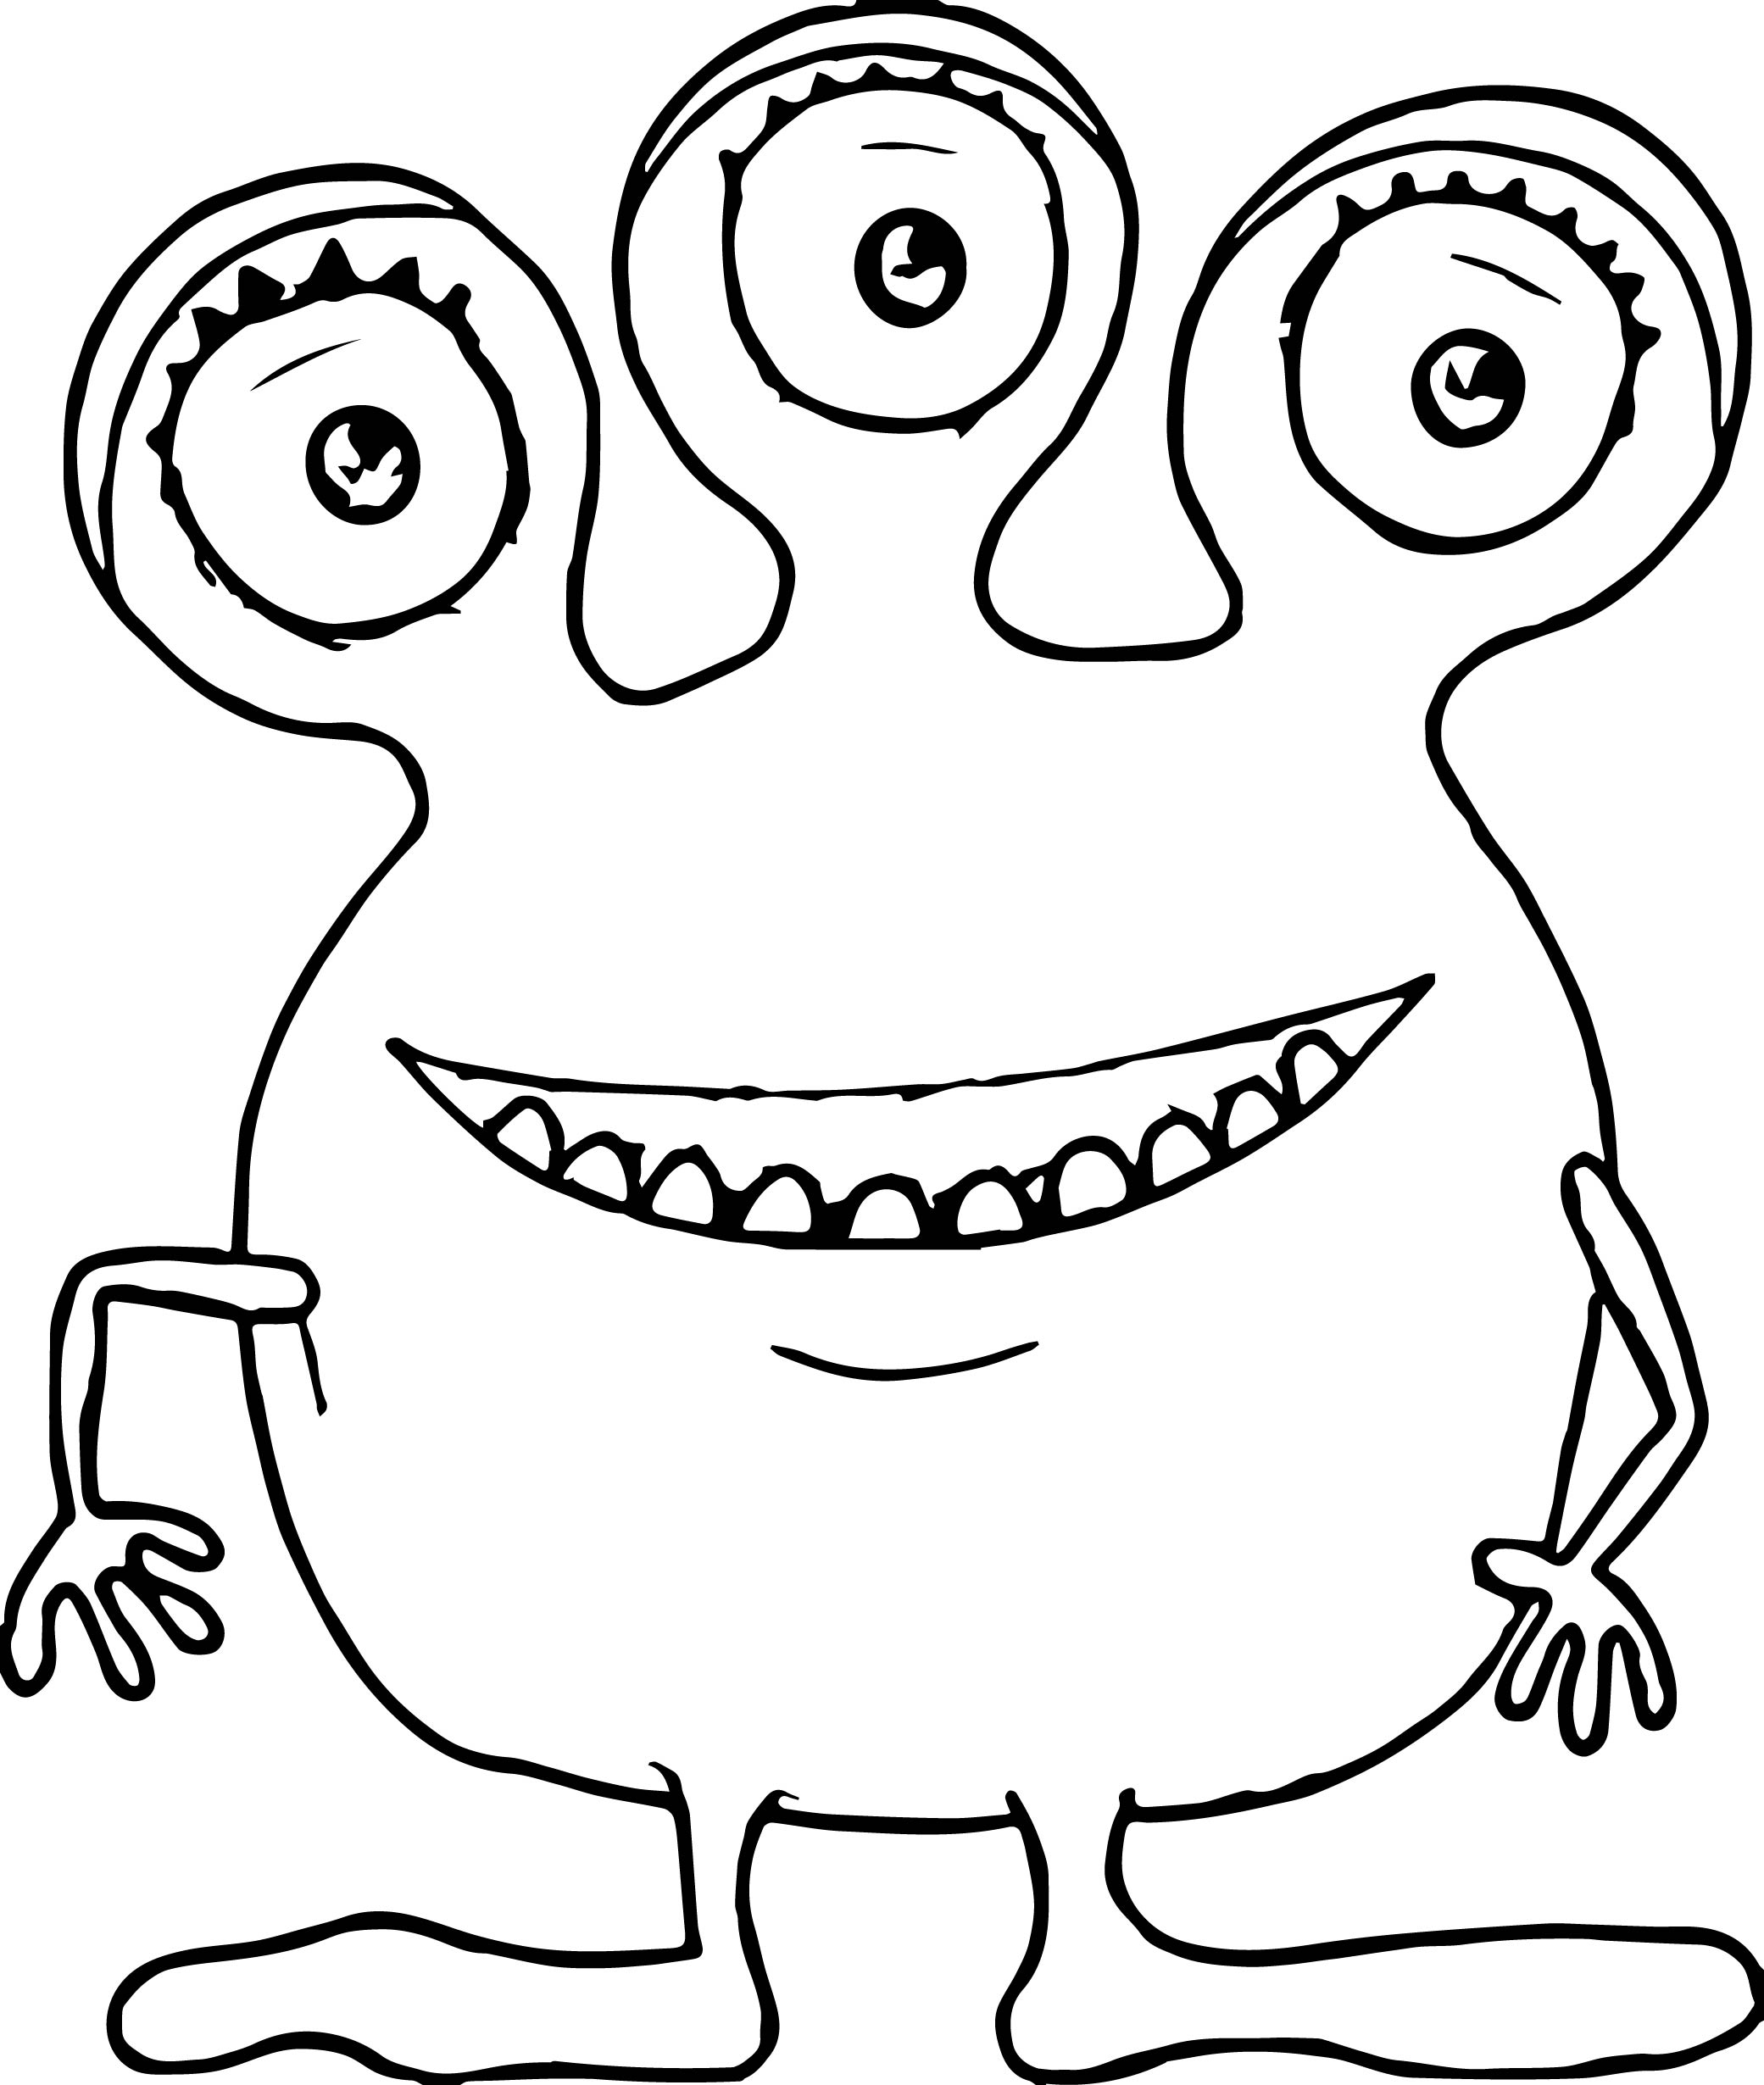 Monsters Coloring Page 20